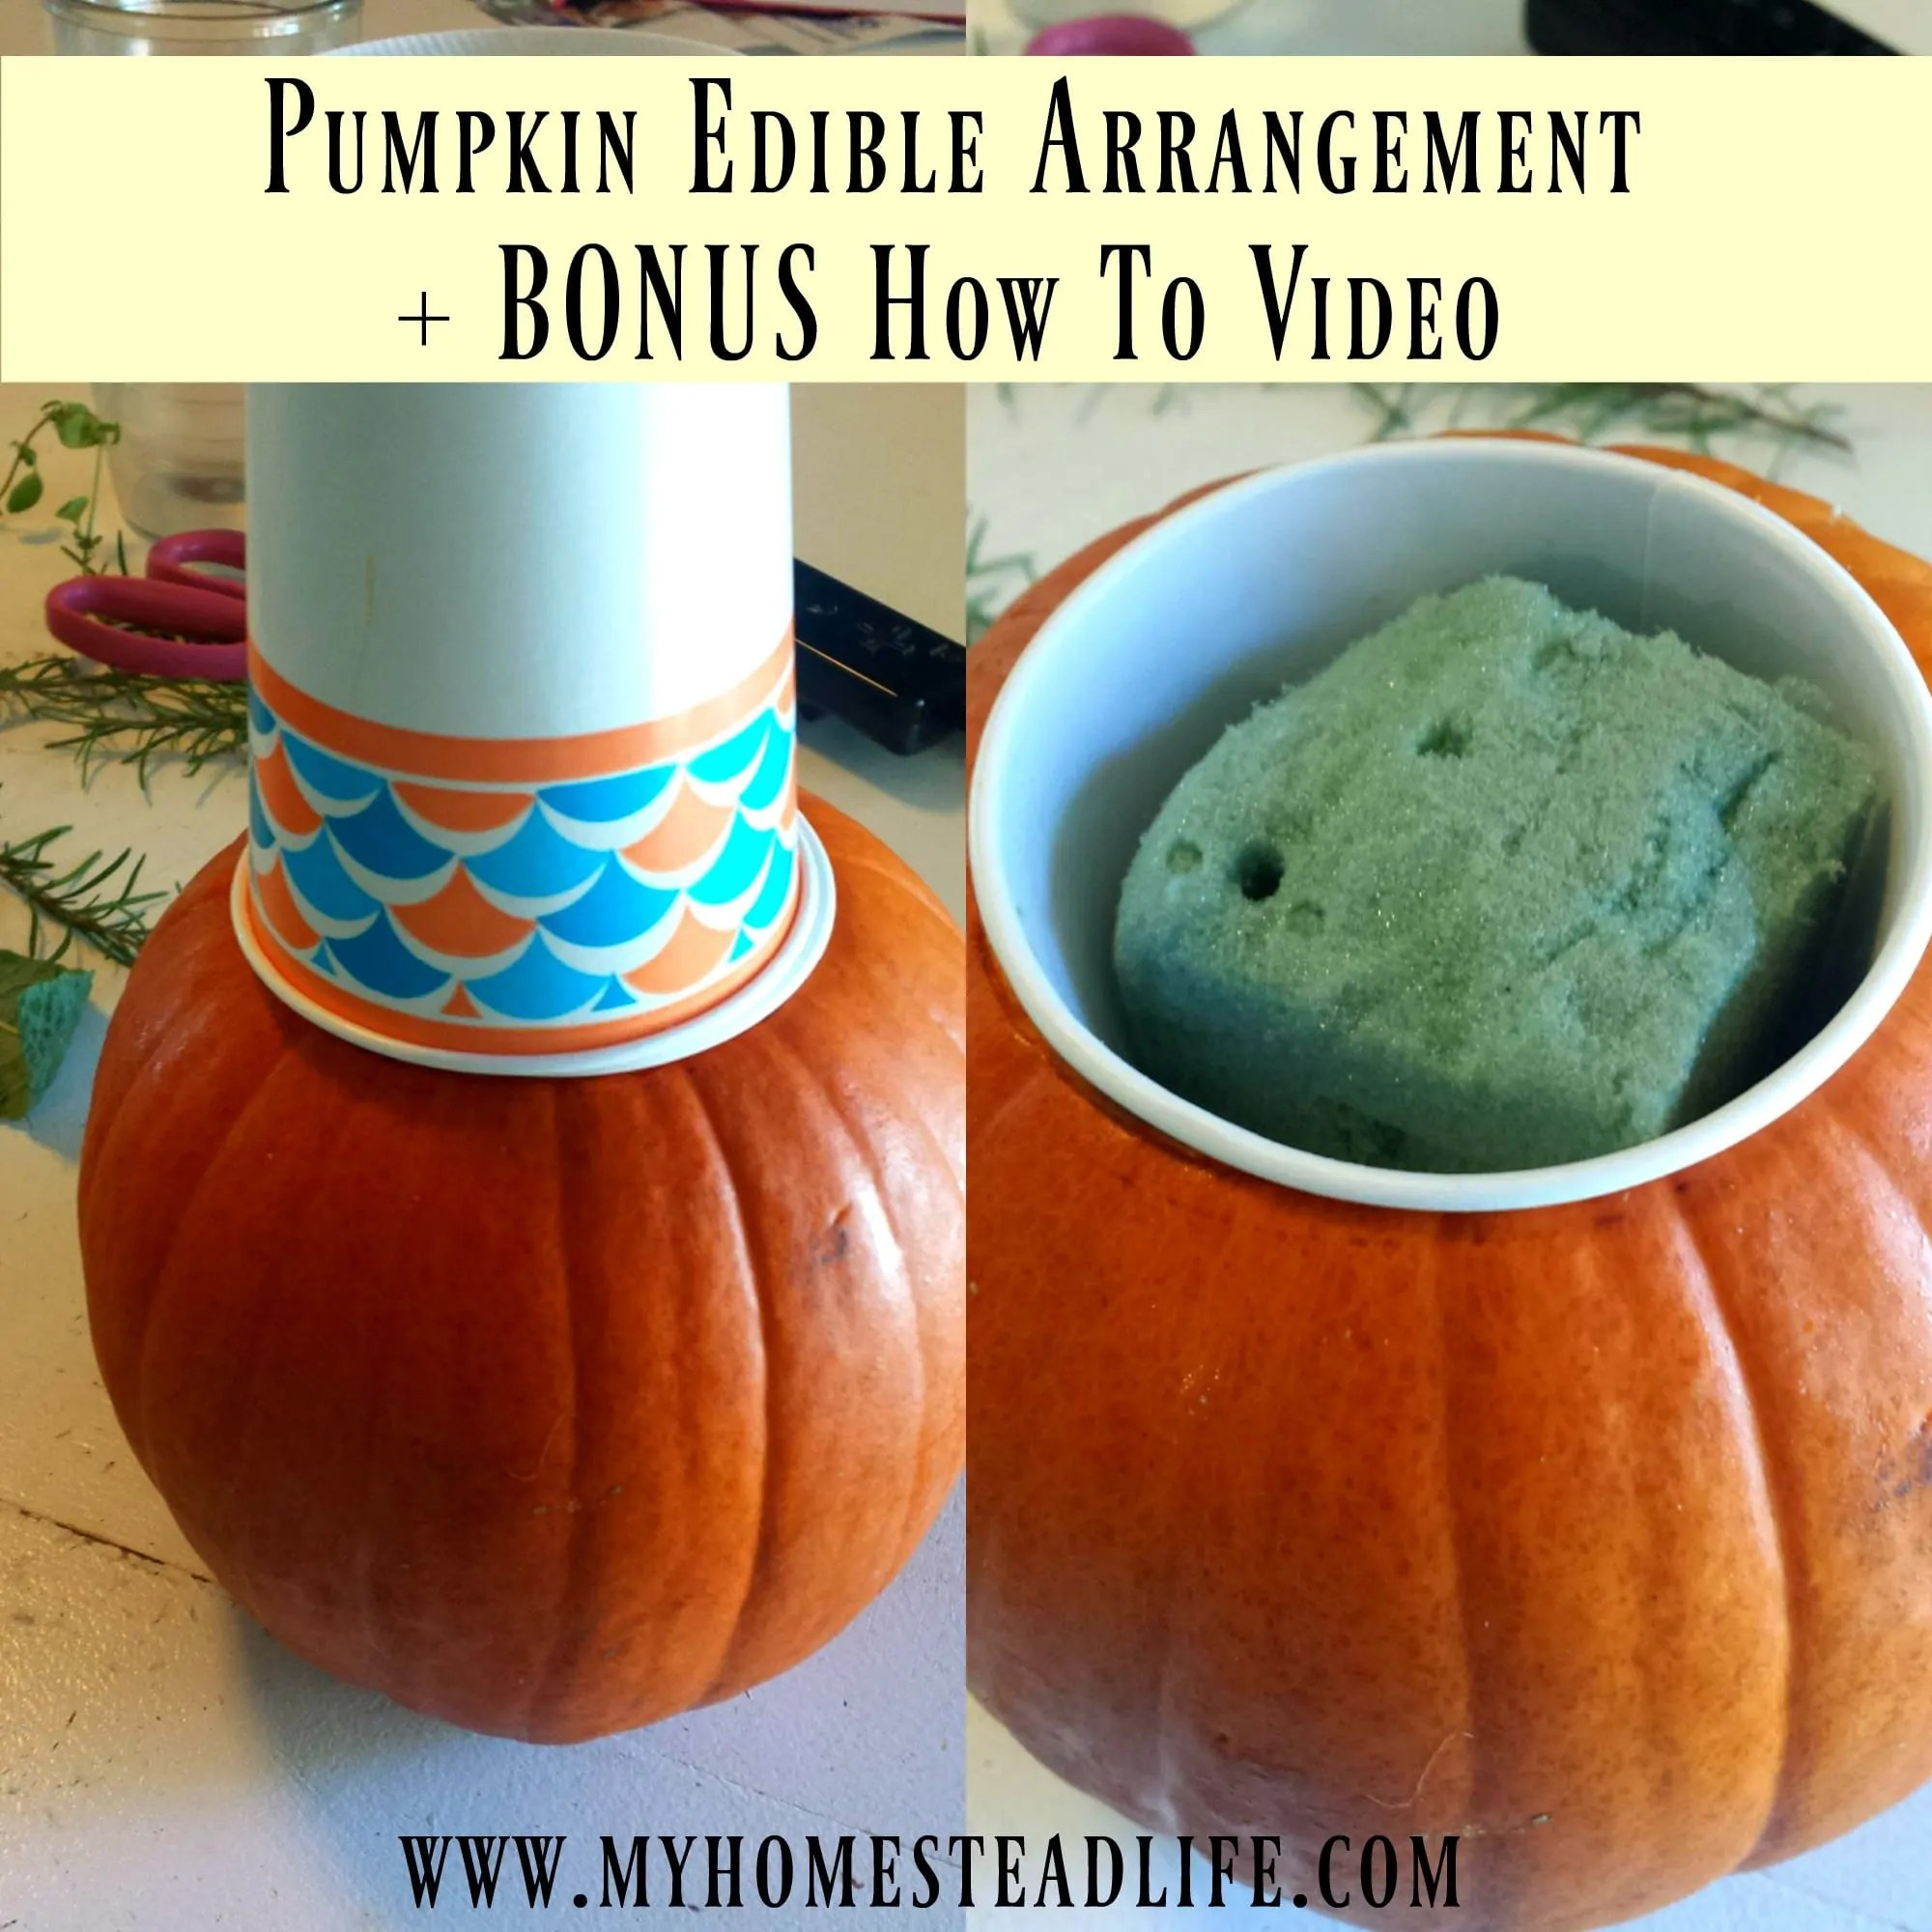 Pumpkin Edible Arrangement + BONUS Video